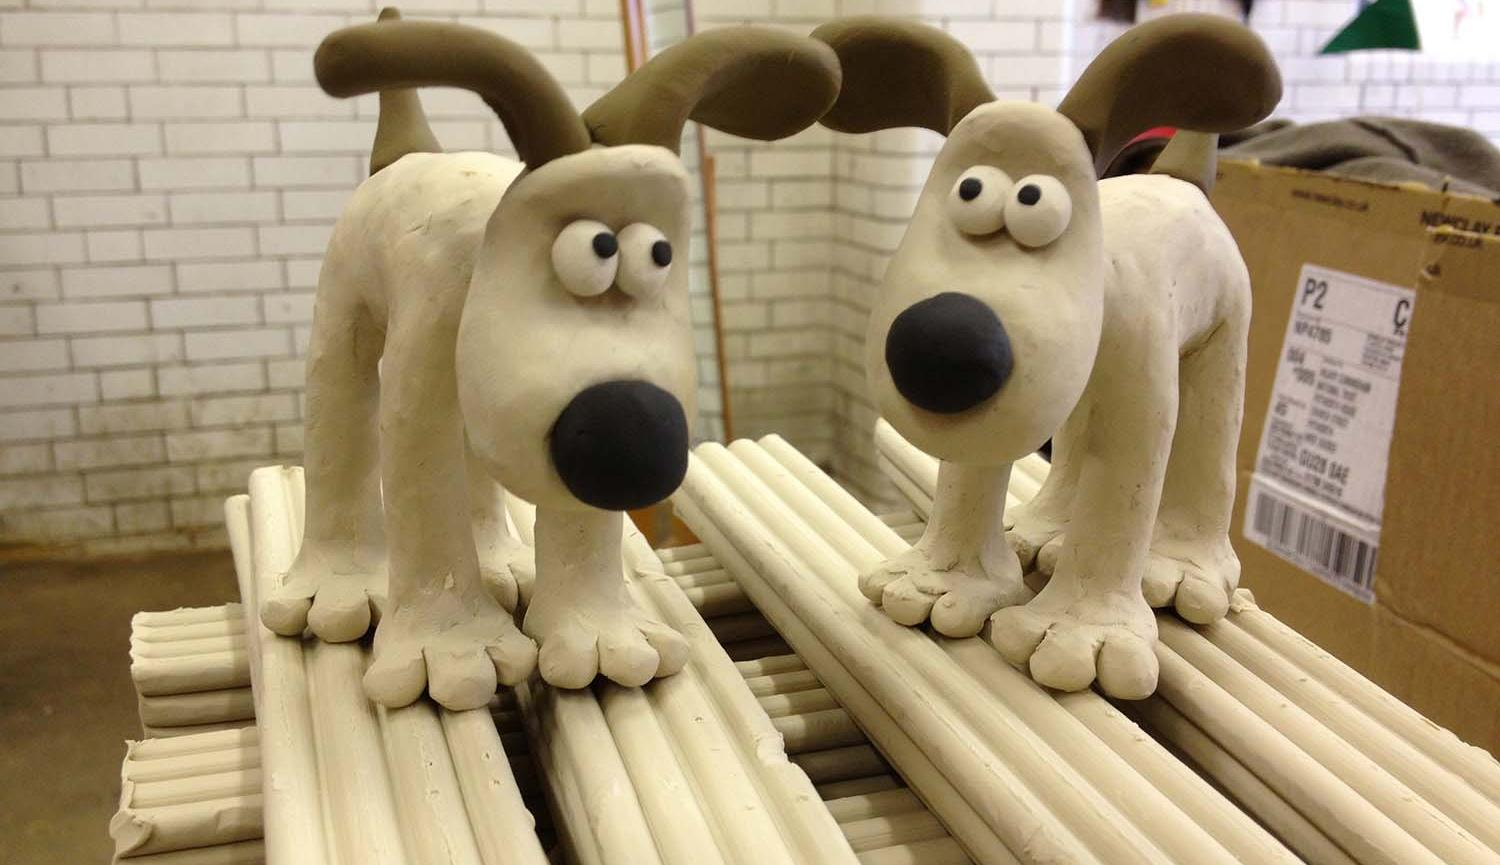 Aardman Animations Gromit and Feathers Clay Station Dropins at Live Theatre image of Gromit clay models